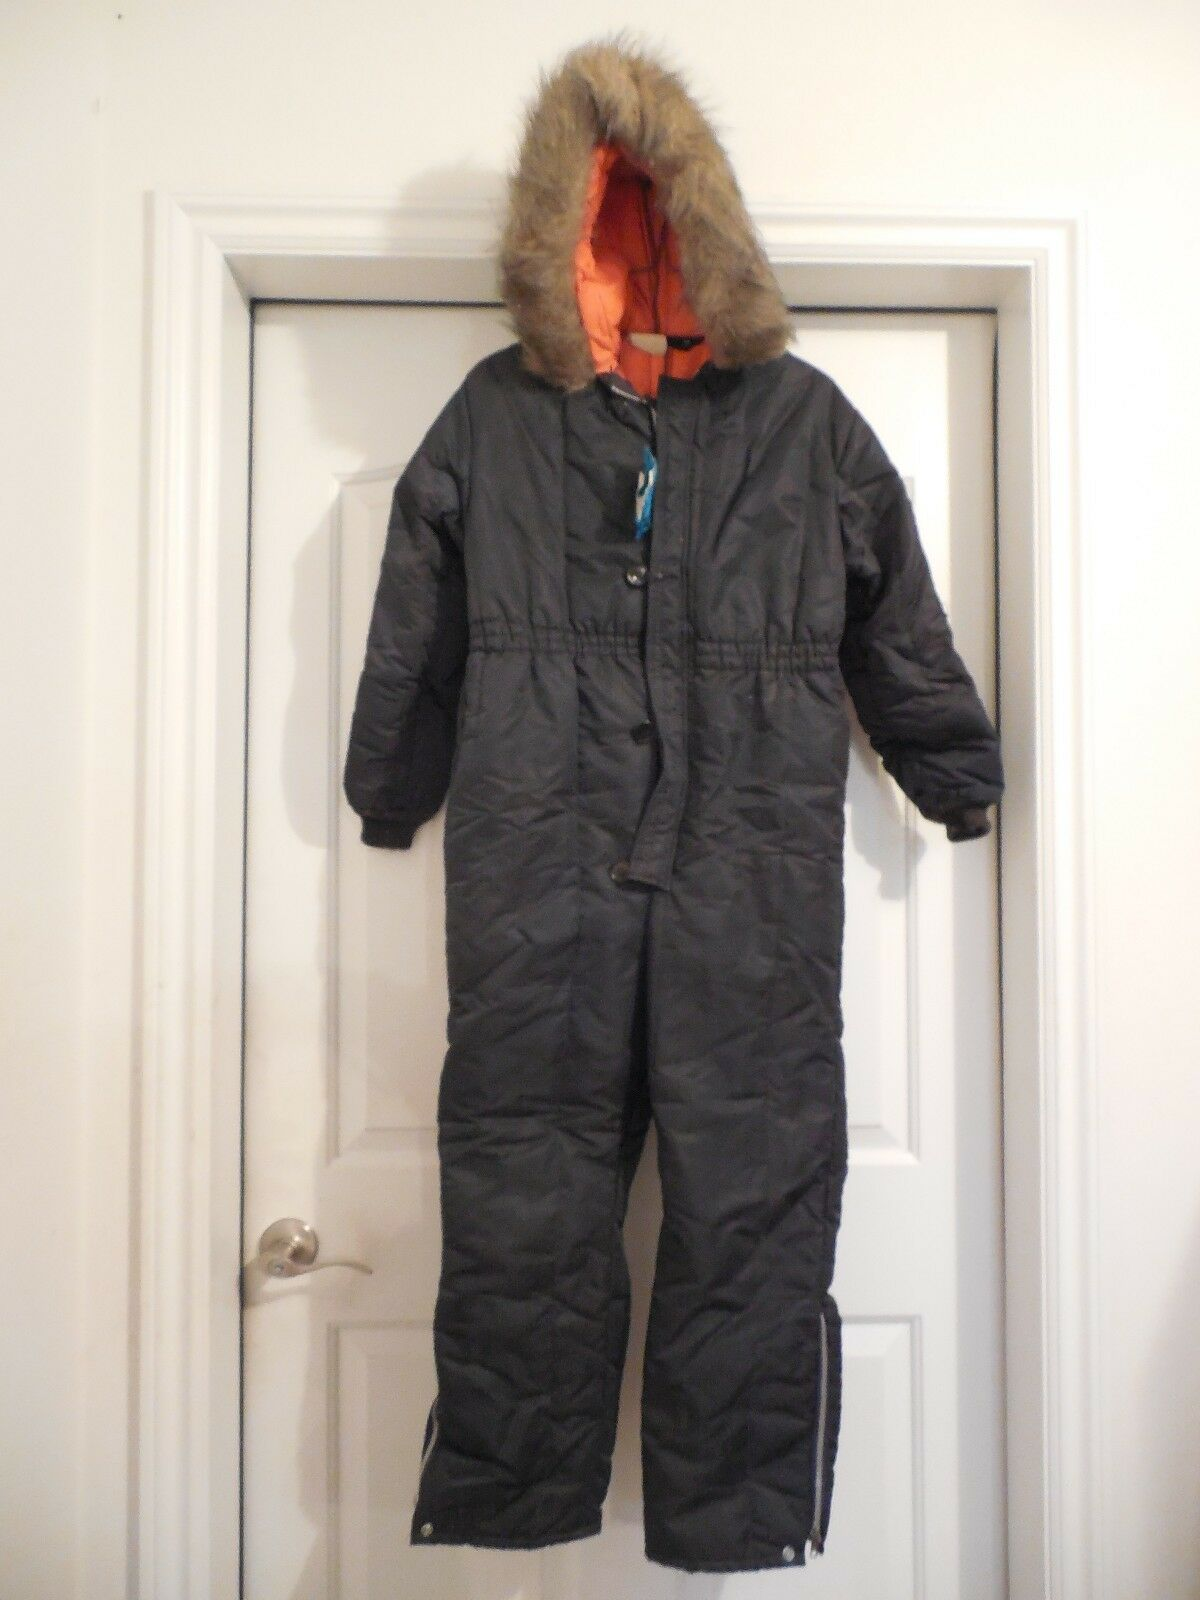 Vintage Snowsuit Snow Mobile Skiing Furry Hood Youth Sz 16 bluee orange Insulated